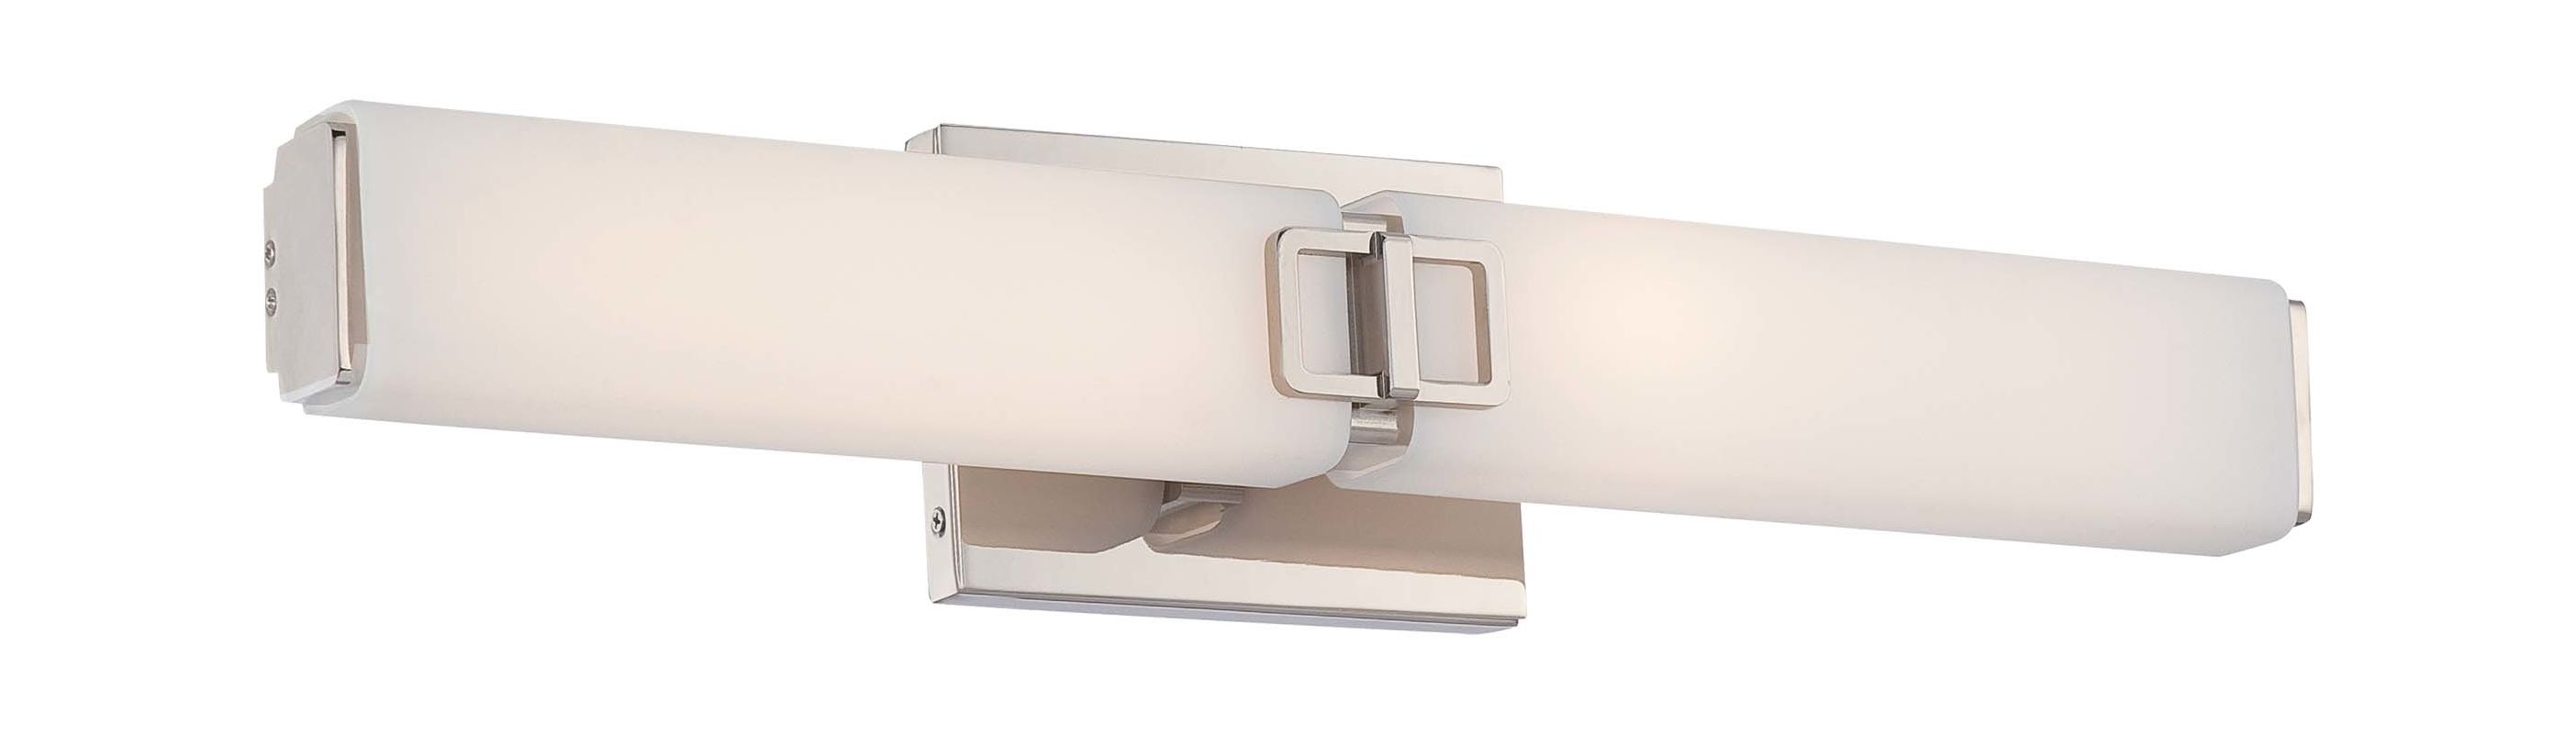 Minka Lavery 392-613-L LED ADA Compliant Bath Bar from the Square